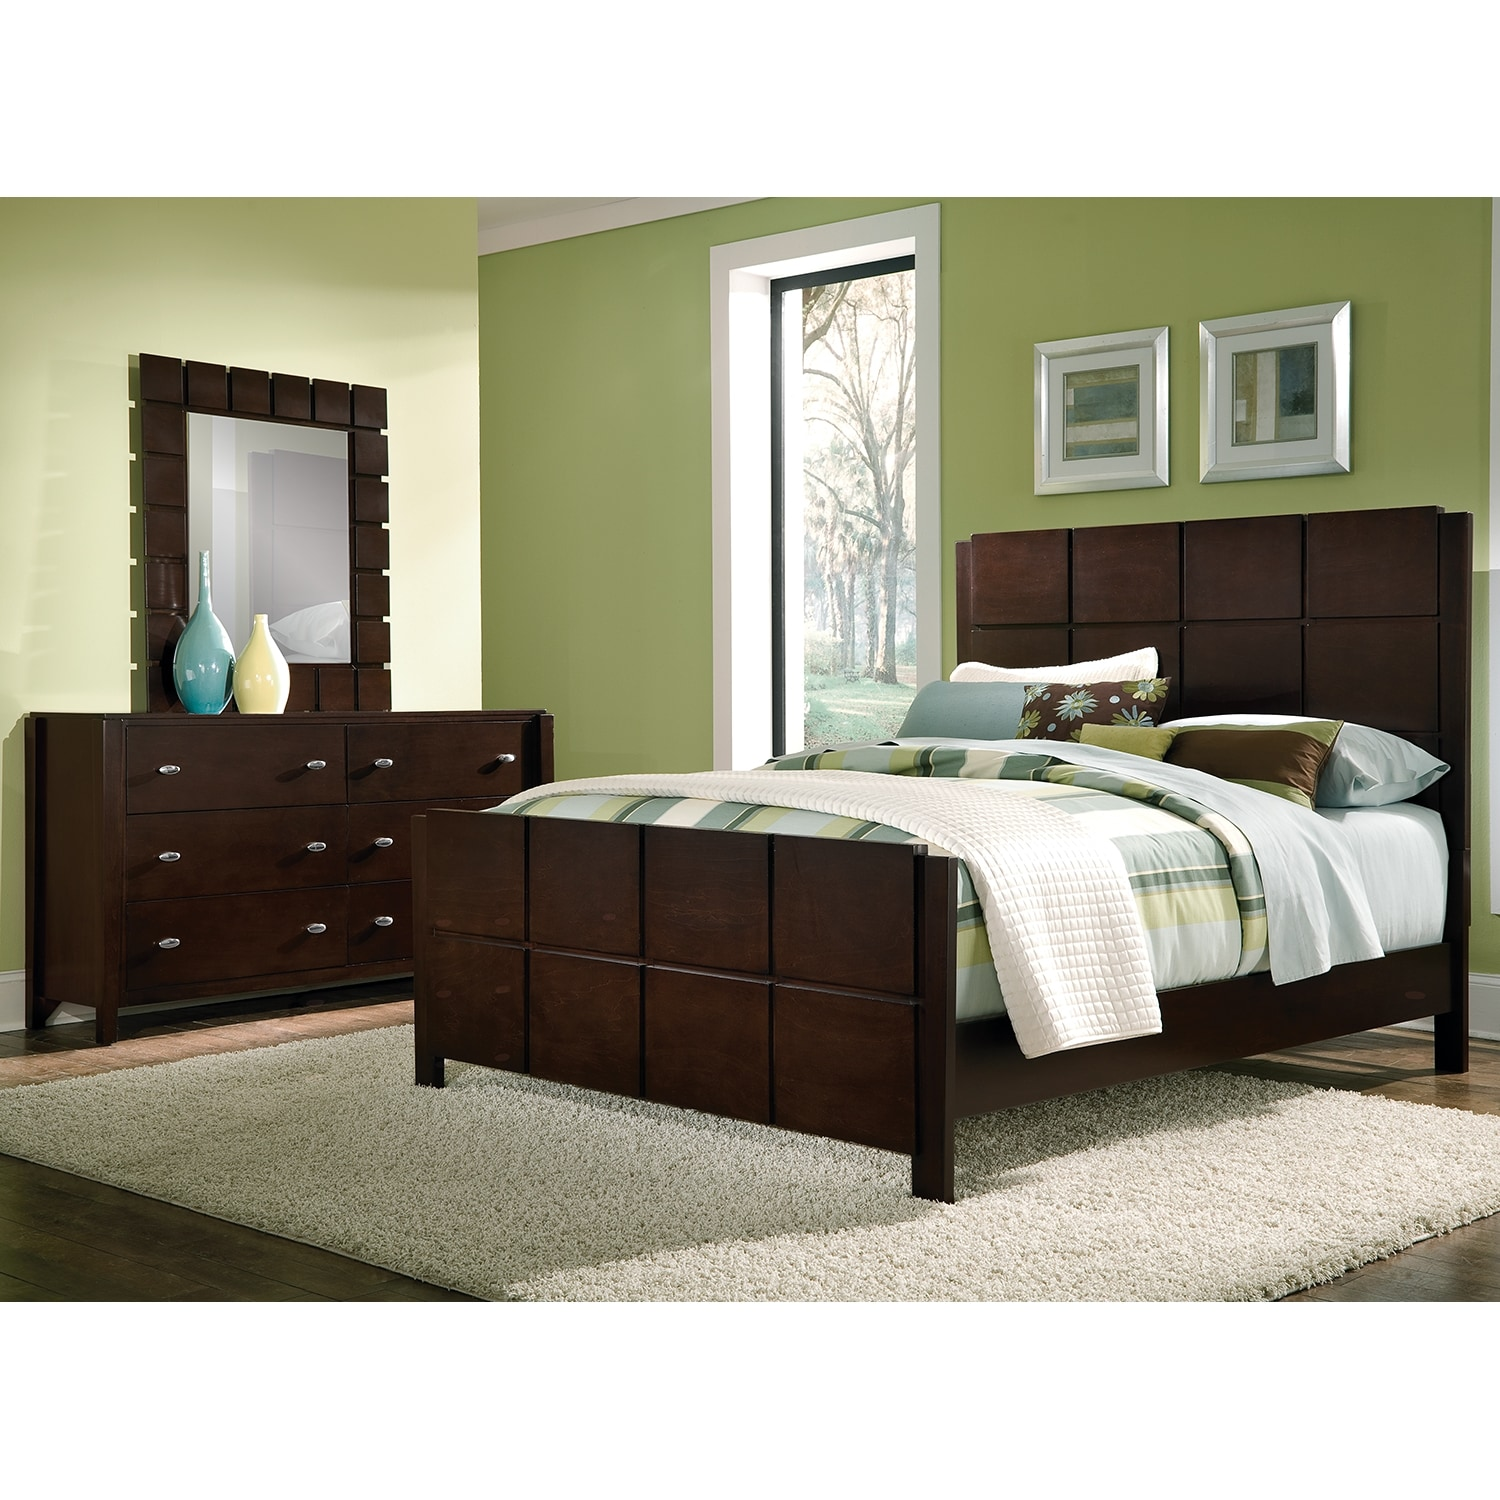 Mosaic 5 piece king bedroom set dark brown american for King bedroom furniture